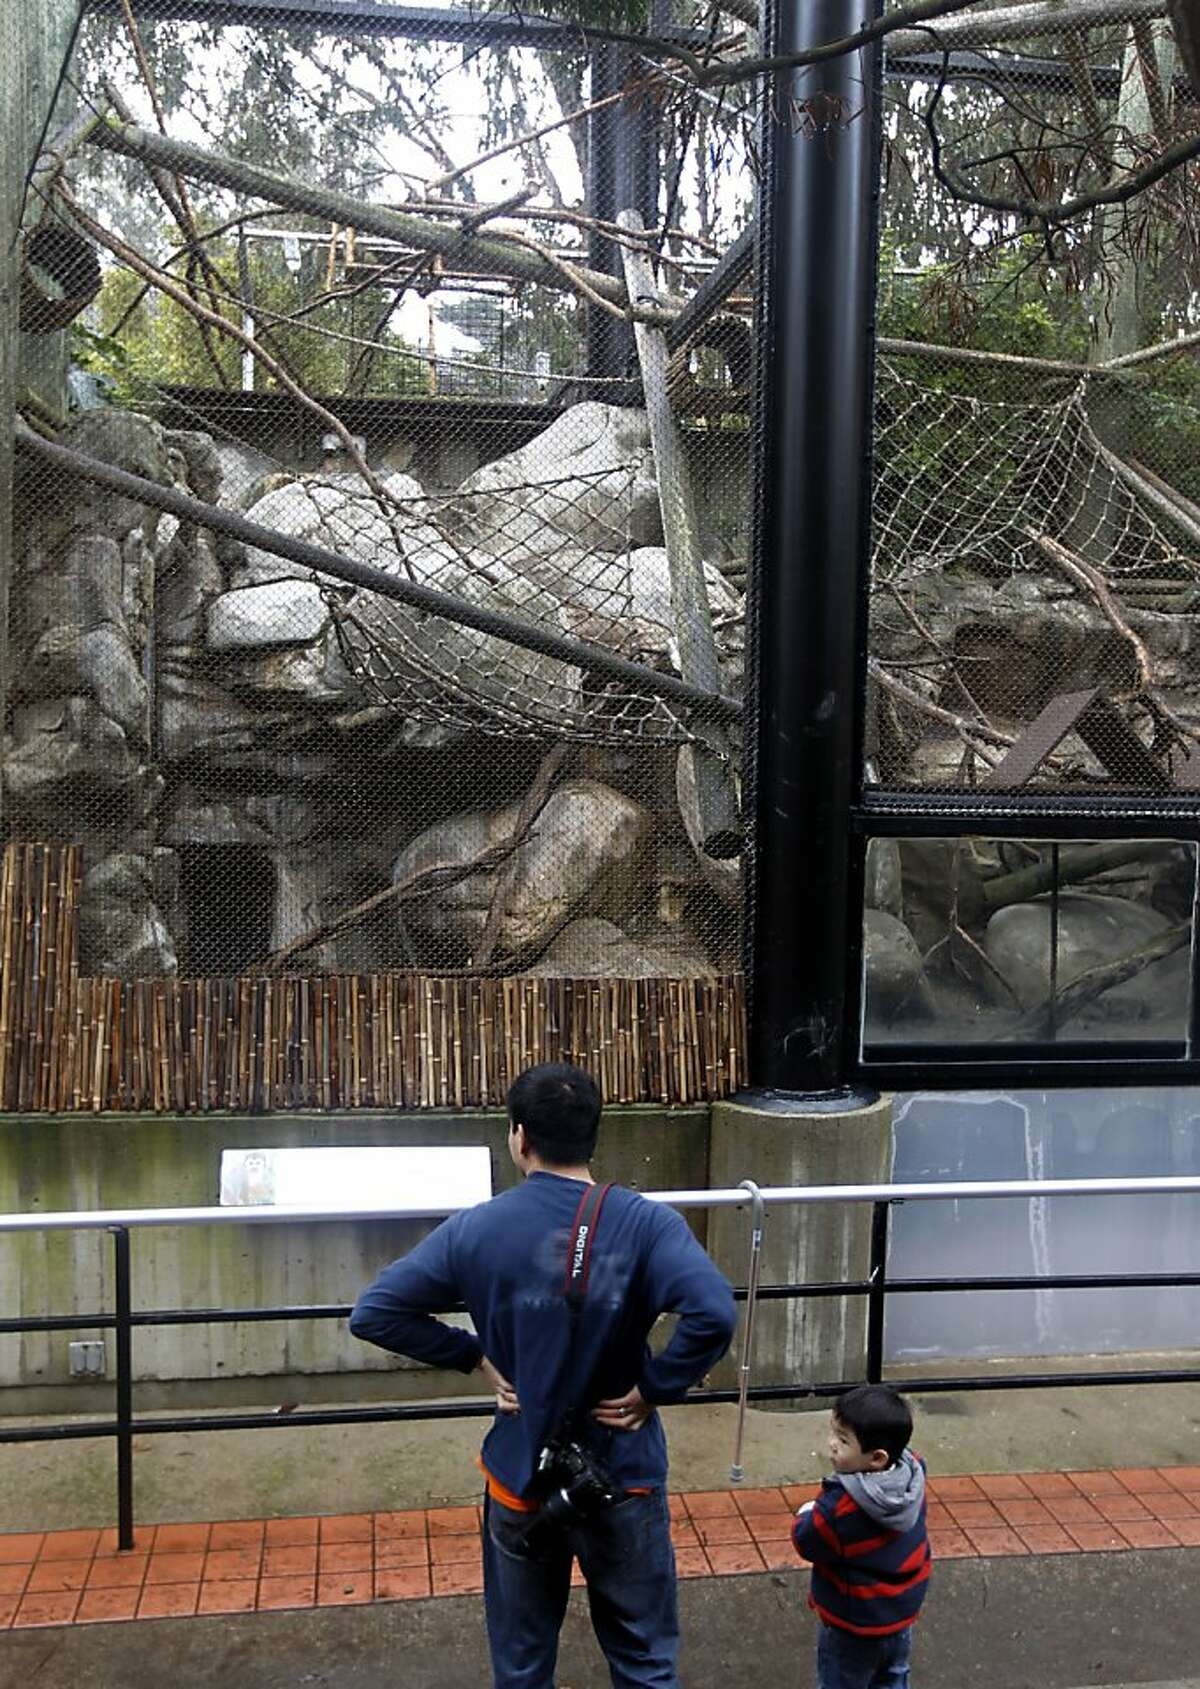 Visitors look at the squirrel monkey exhibit at the San Francisco Zoo in San Francisco, Calif. on Friday, Dec. 30, 2011. Zoo officials discovered a hole cut was in the fence of the exhibit and one of the primates named Banana-Sam missing when keepers arrived for work in the morning.